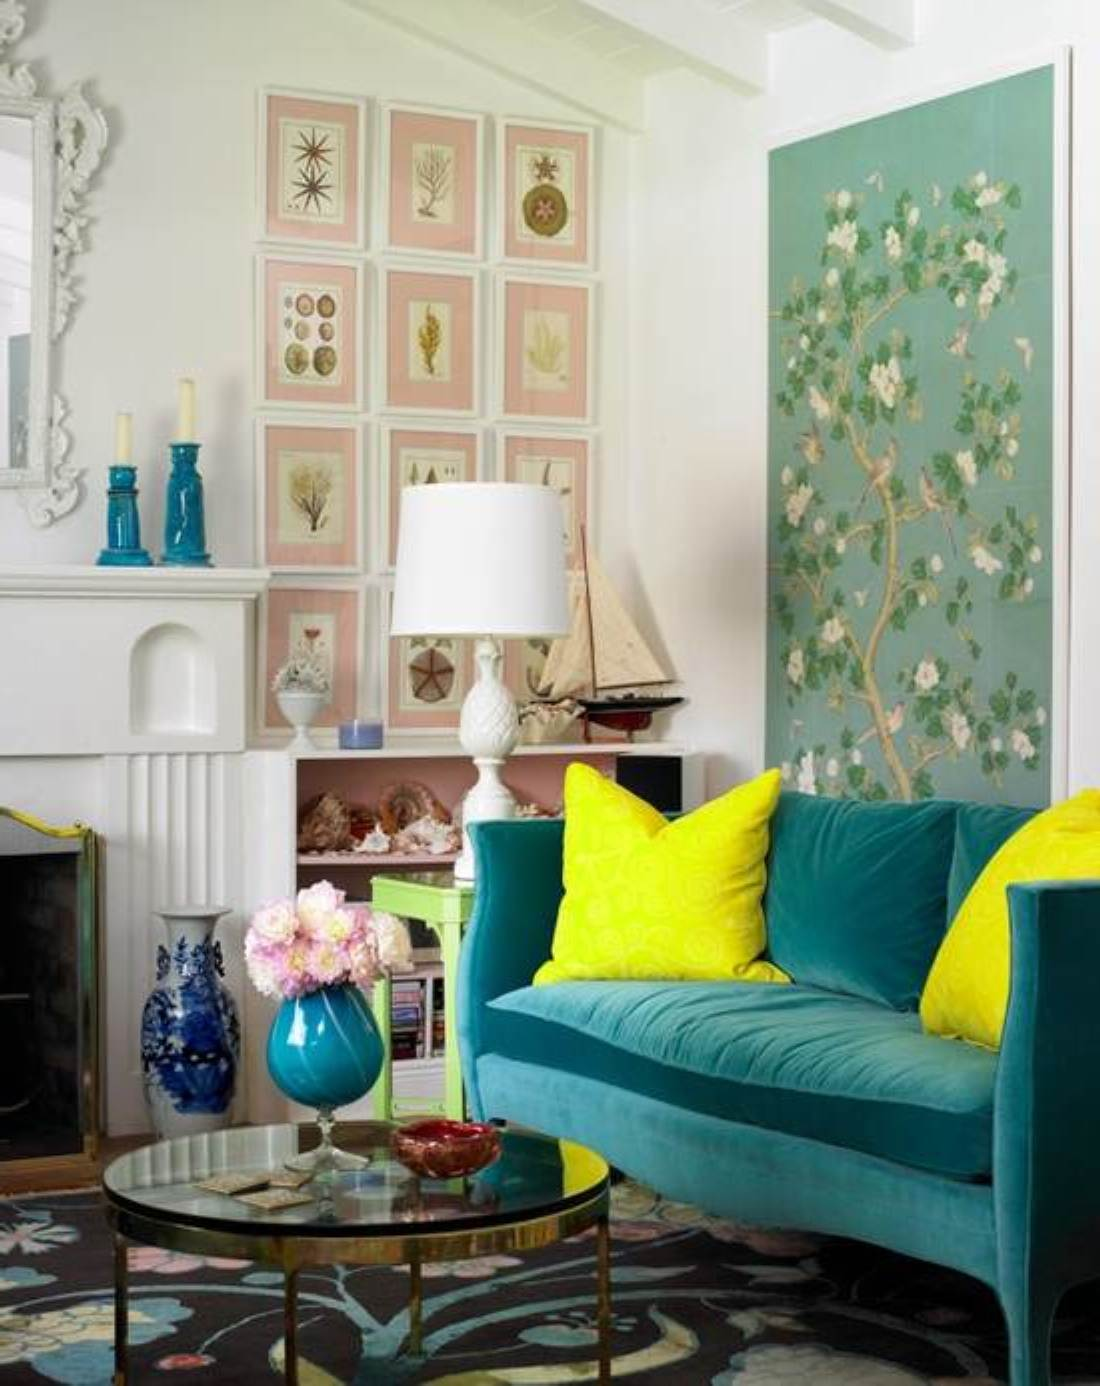 Some Easy Rules of Small Space Decorating - Live DIY Ideas